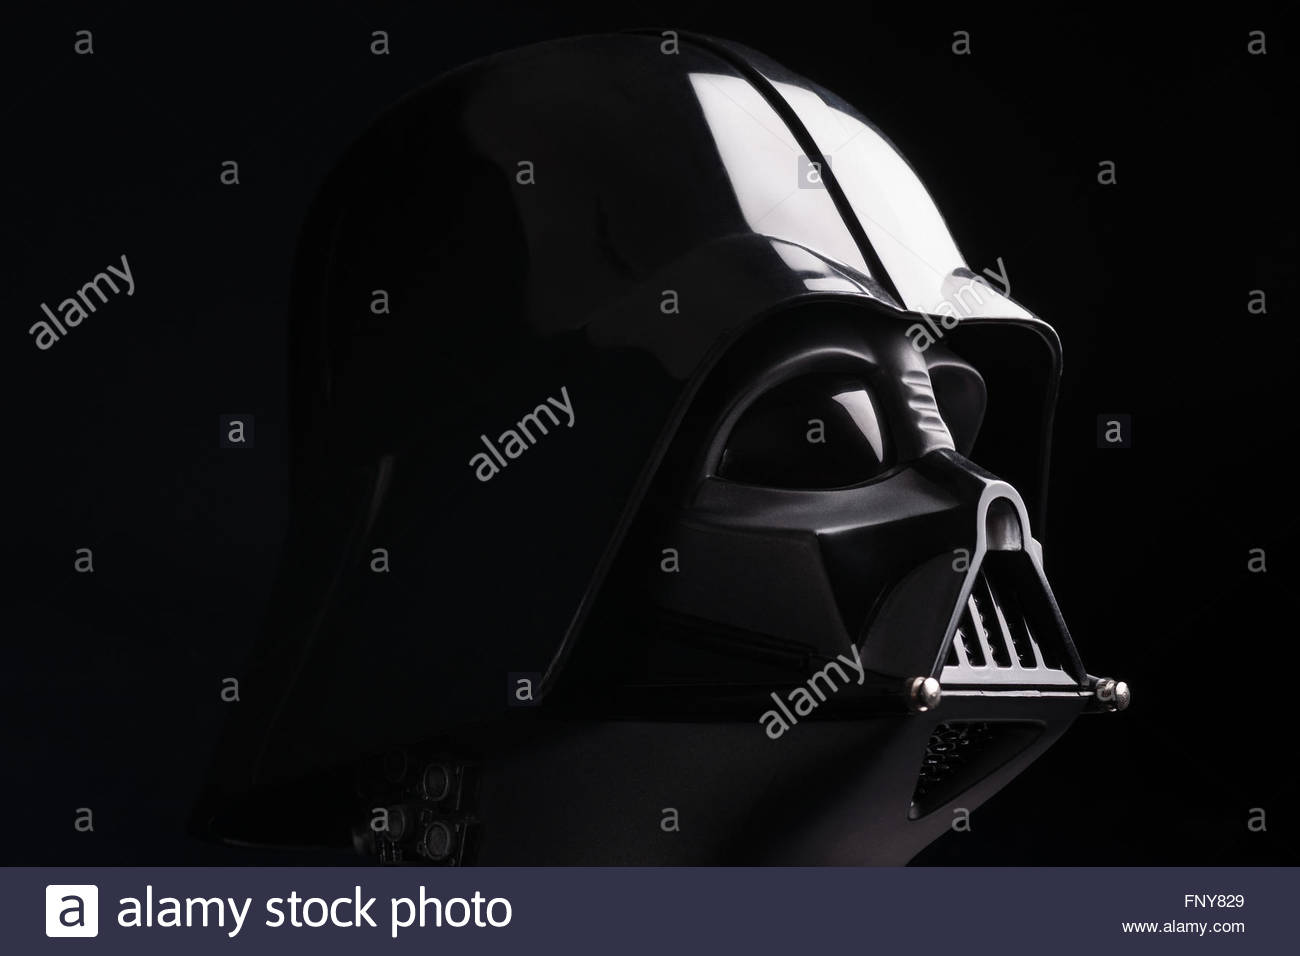 star-wars-darth-vader-helmet-replica-by-